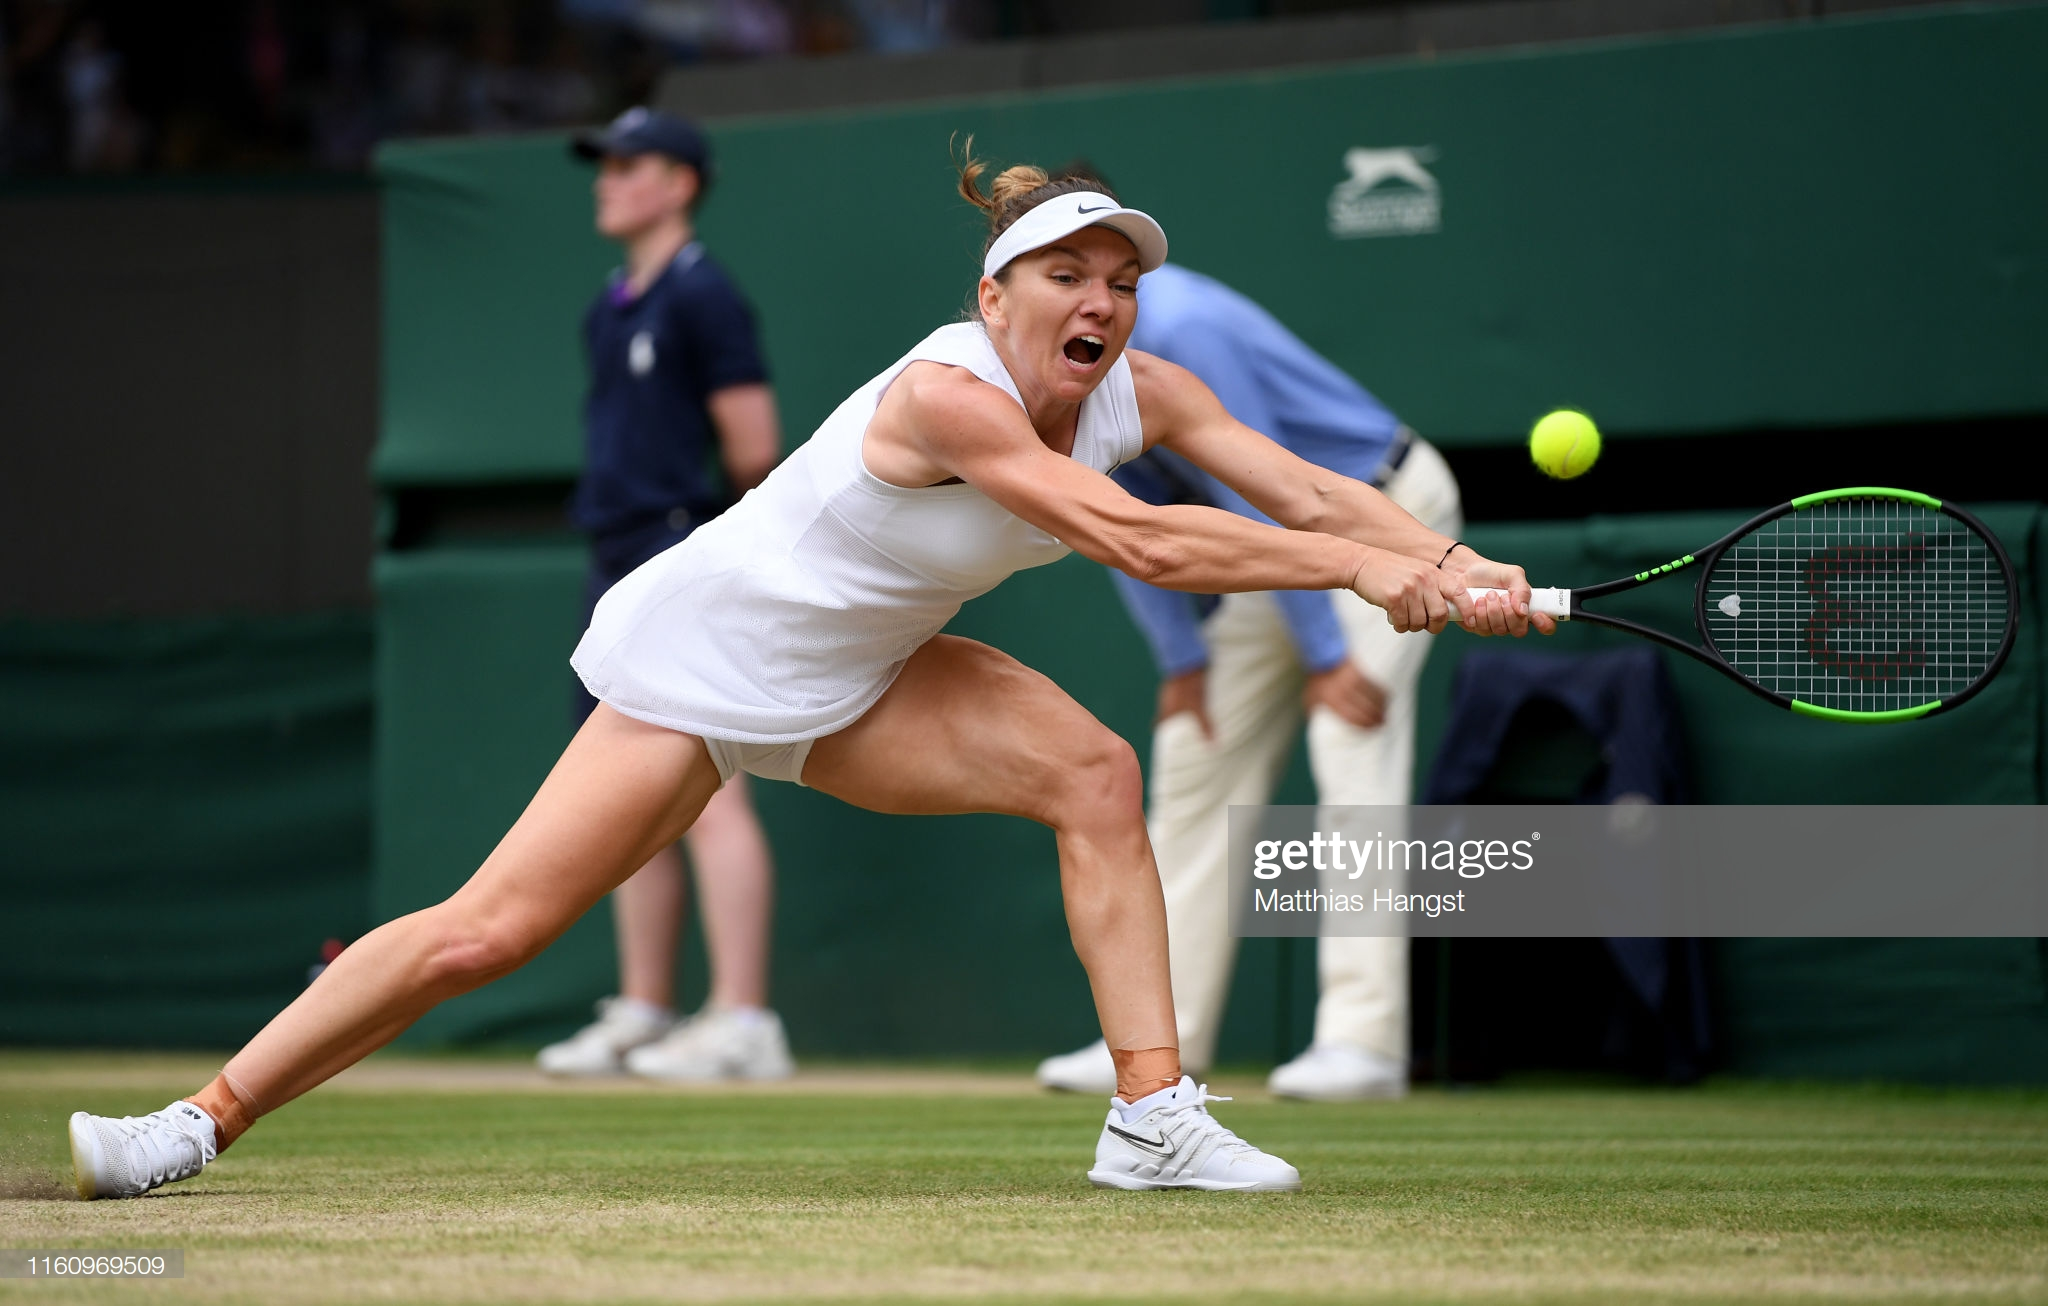 LONDON, ENGLAND - JULY 09: Simona Halep of Romania plays a backhand in her Ladies' Singles Quarter Final match against Shuai Zhang of China during Day Eight of The Championships - Wimbledon 2019 at All England Lawn Tennis and Croquet Club on July 09, 2019 in London, England. (Photo by Matthias Hangst/Getty Images)